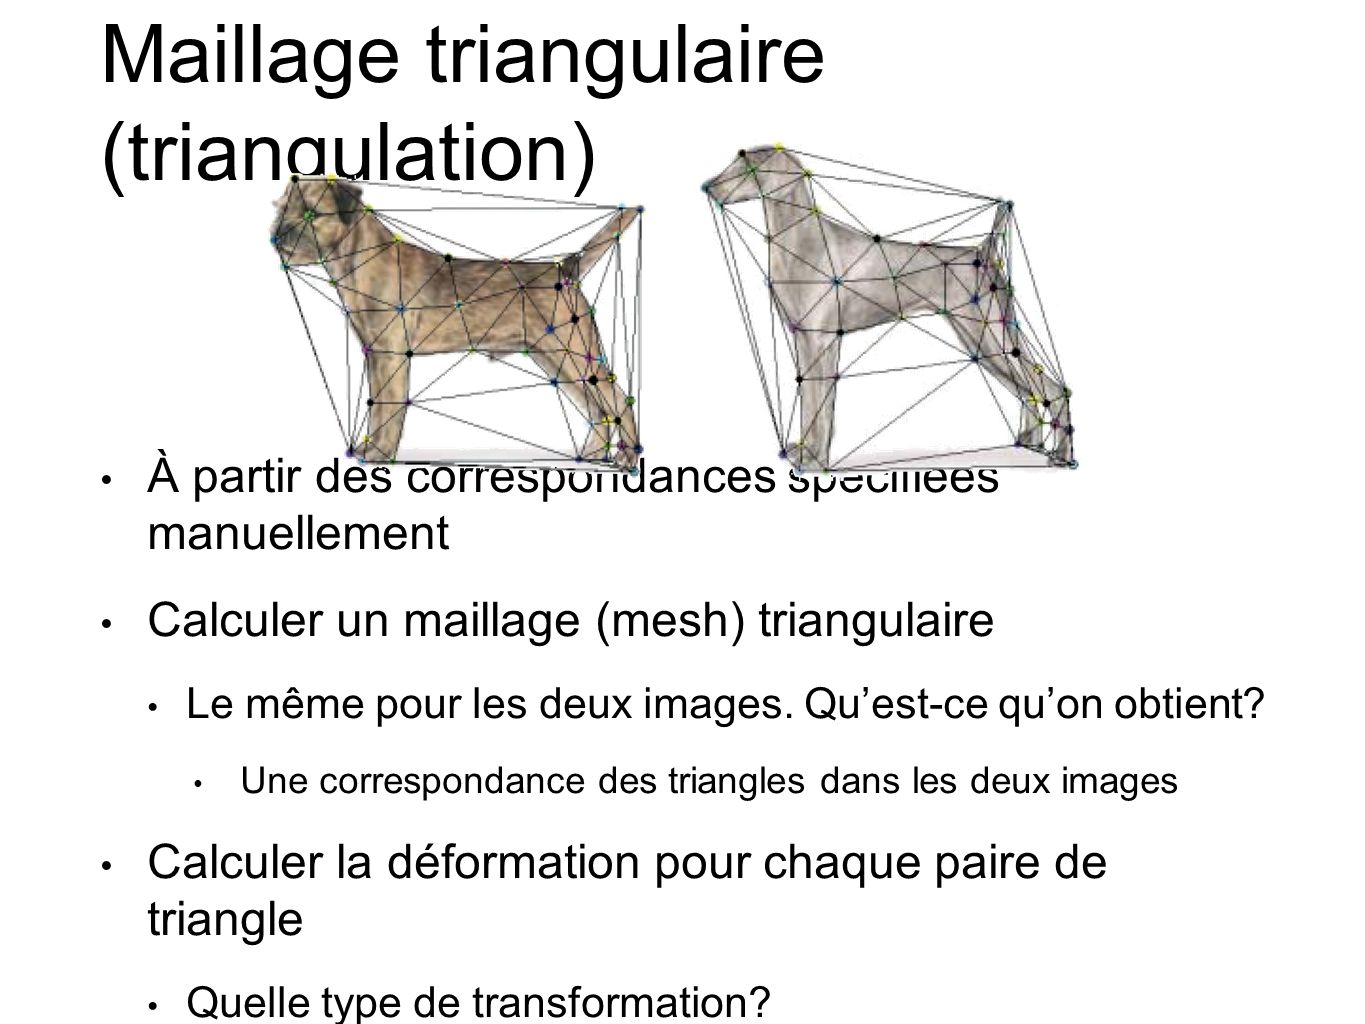 Maillage triangulaire (triangulation)